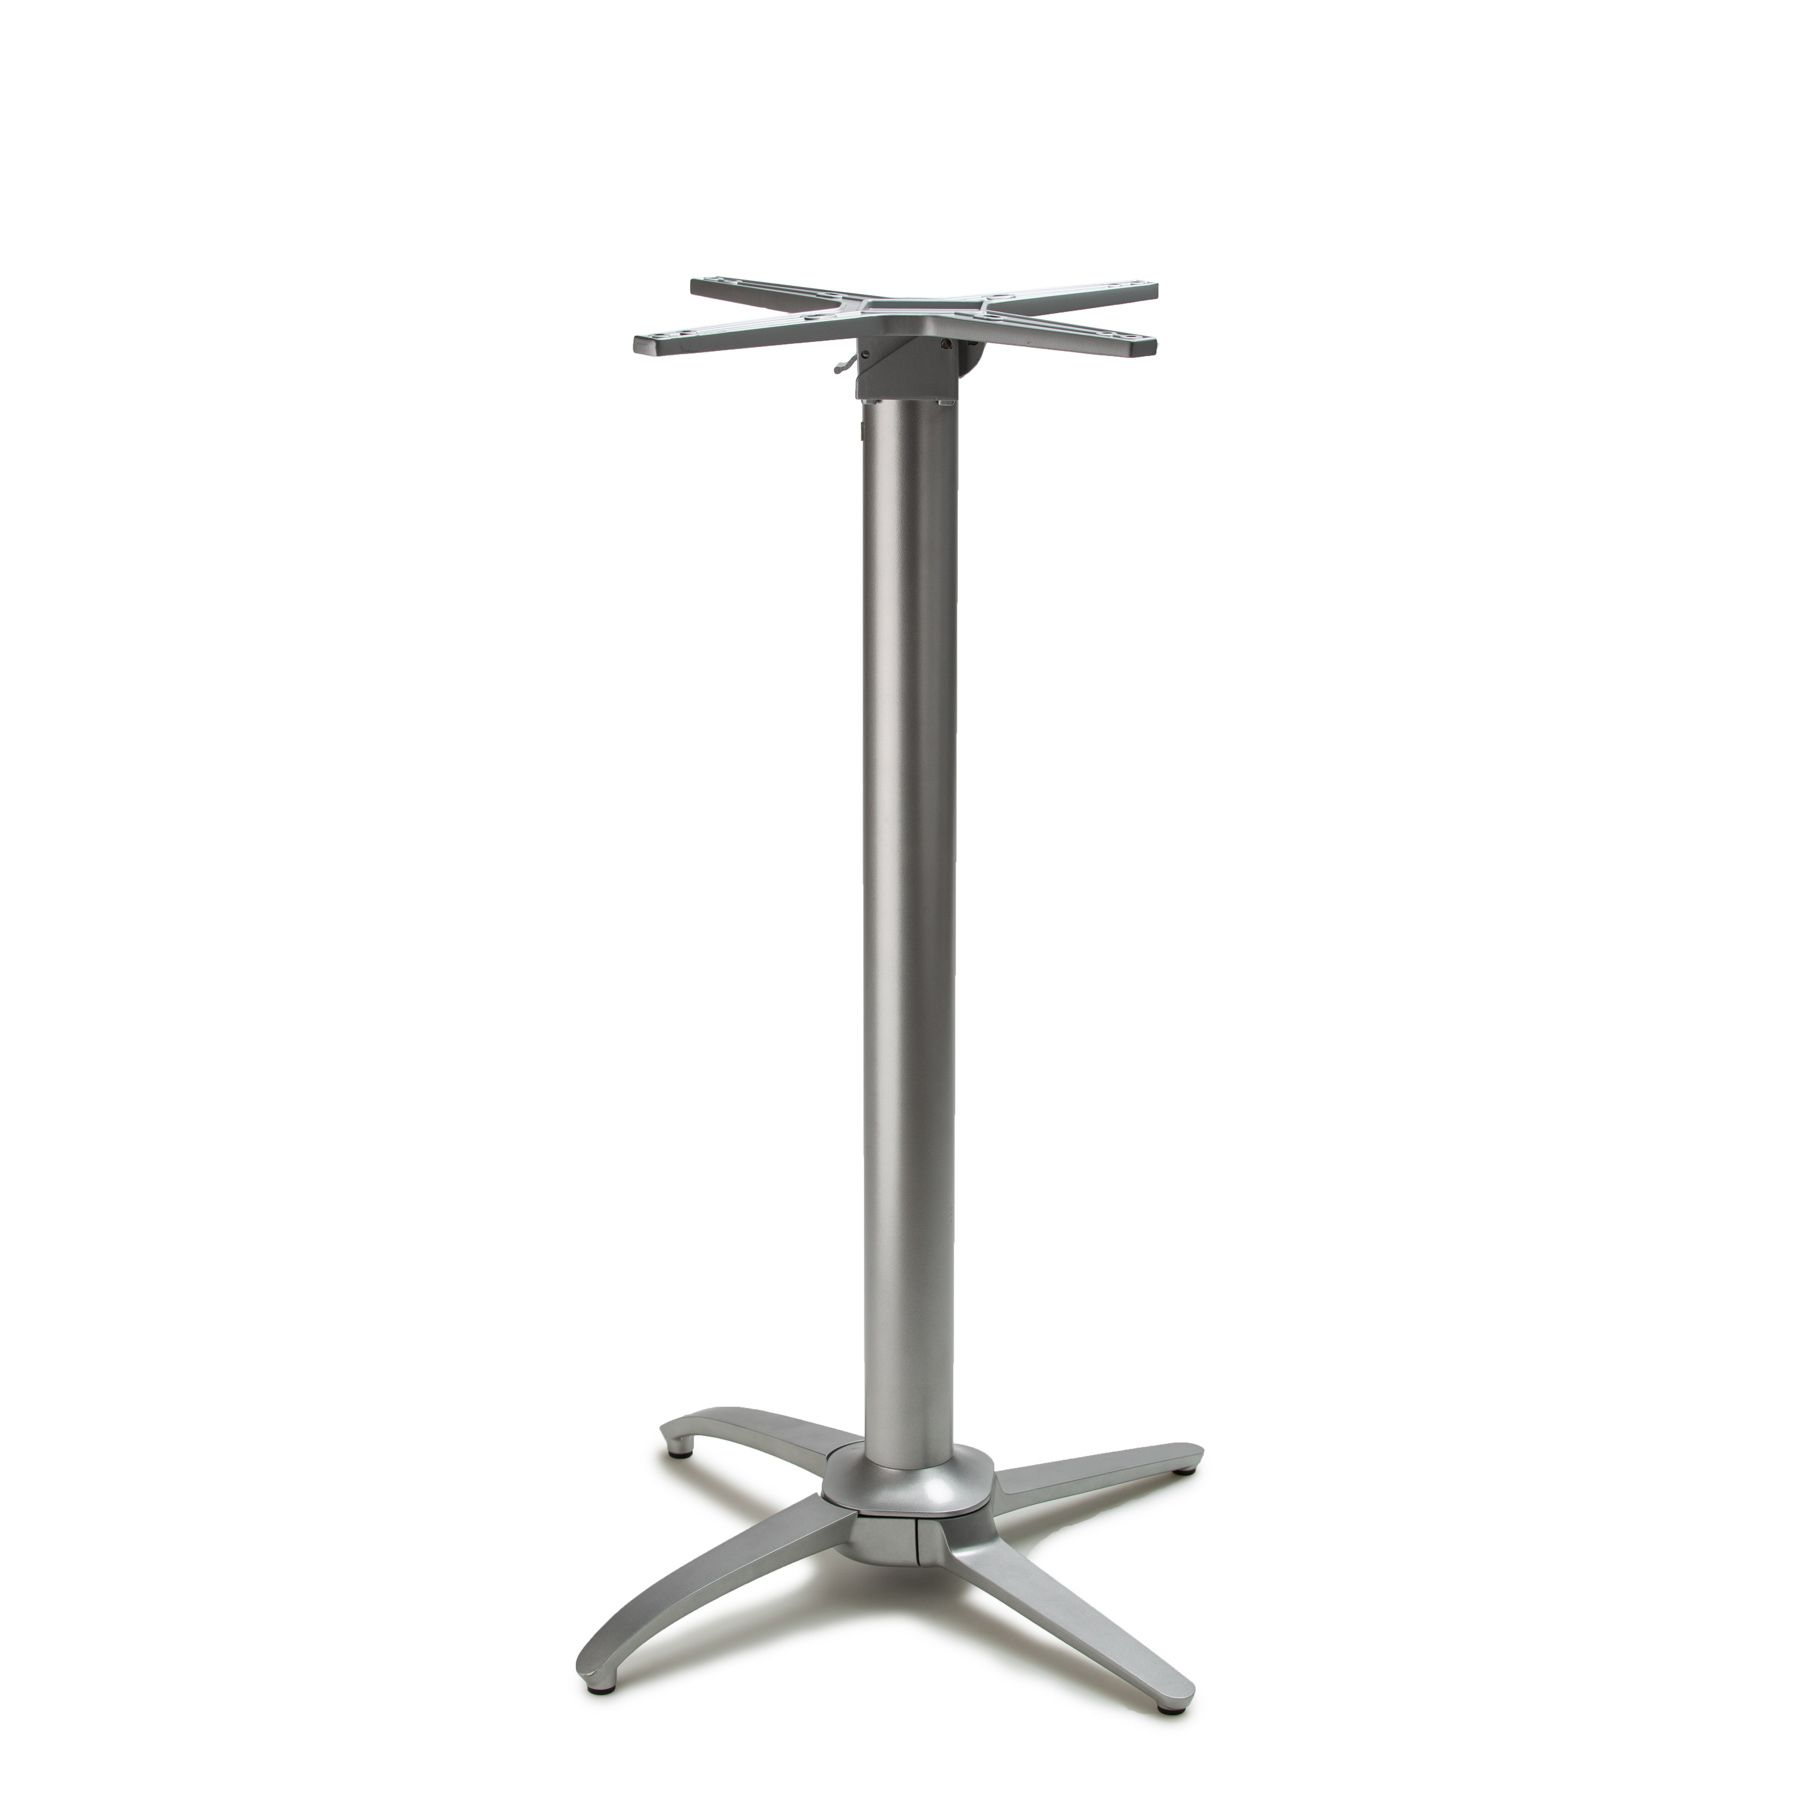 No-Rock Terrace - Self-Stabilizing Table Base